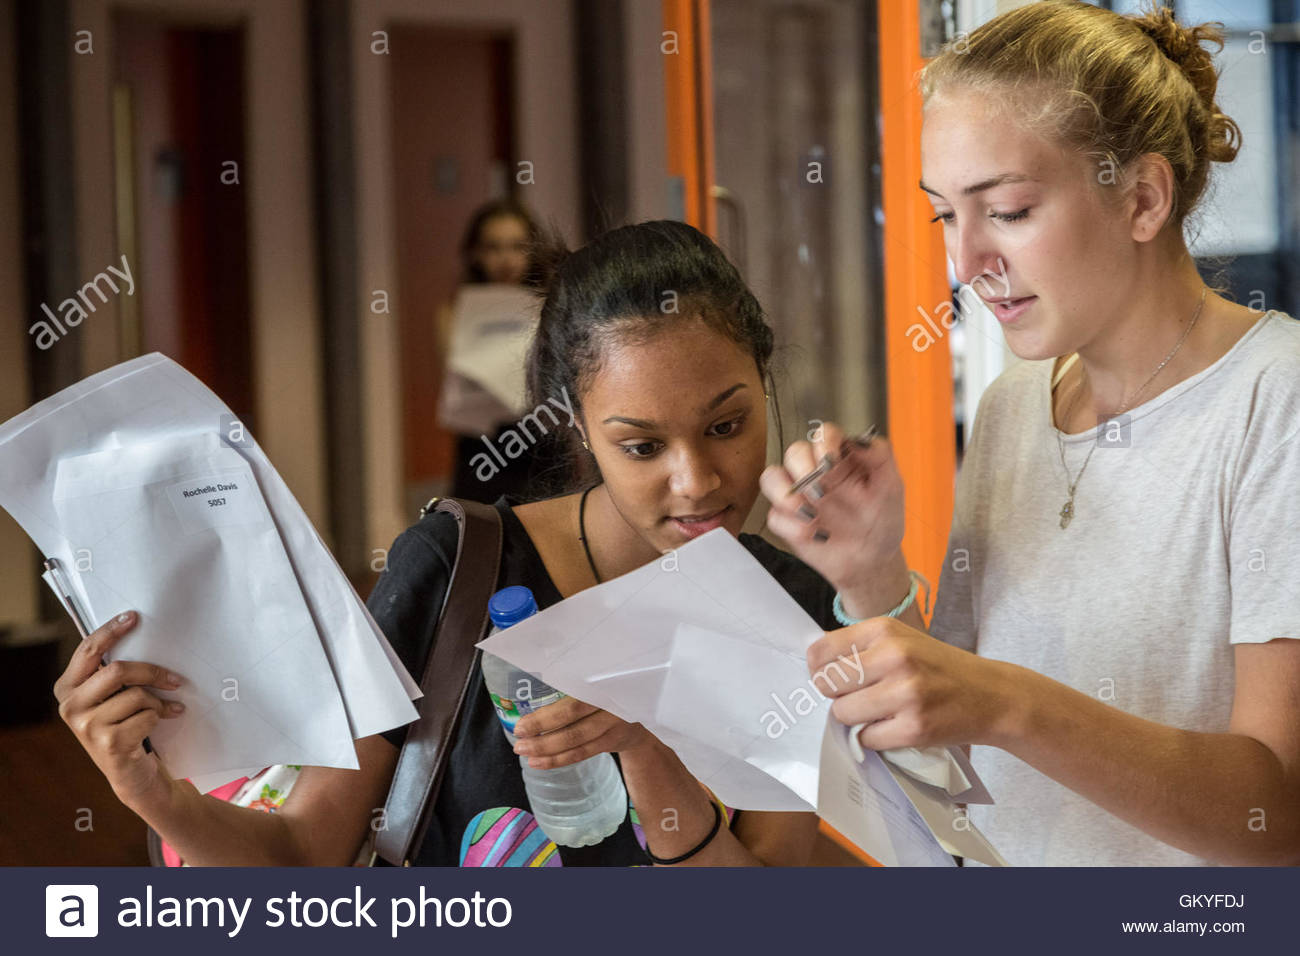 London, UK. 25th August, 2016. Pupils collect their GCSE exam results at Ark Globe Academy in south east London - Stock Image